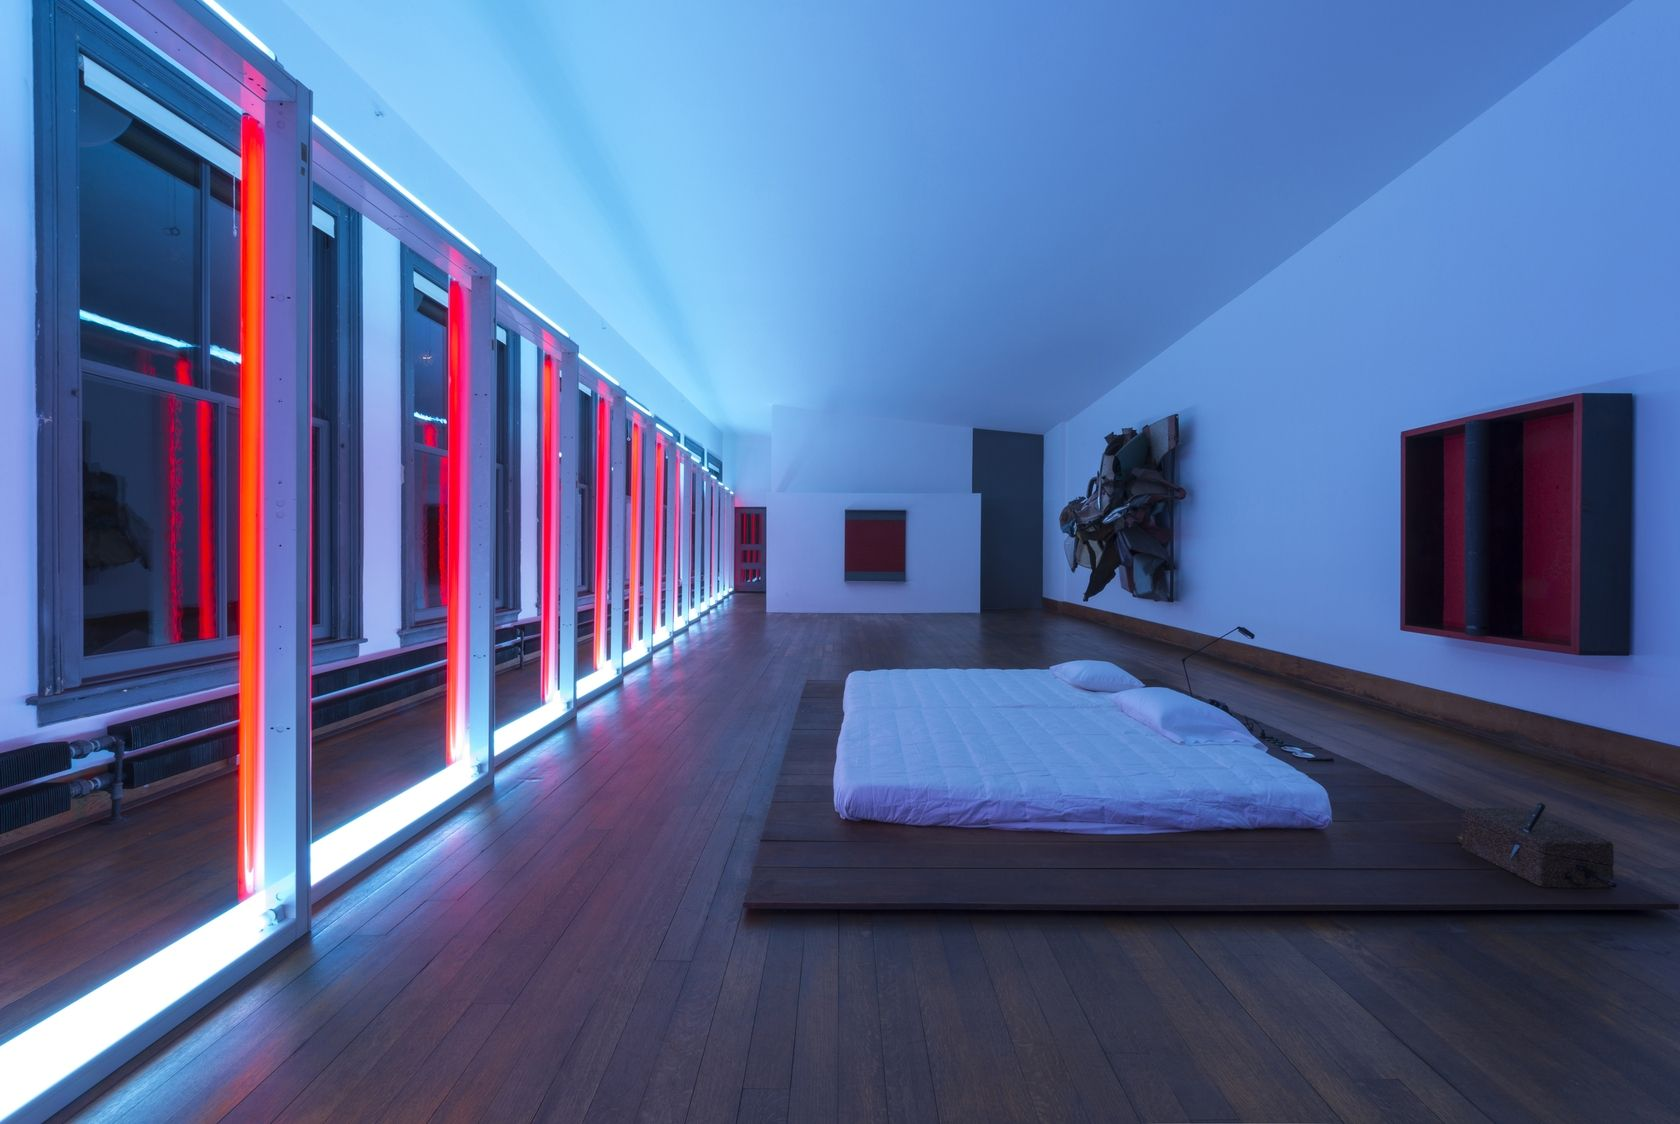 Donald Judd's Home And Studio Now Open For Business - Explore, Collect and Source architecture & interiors